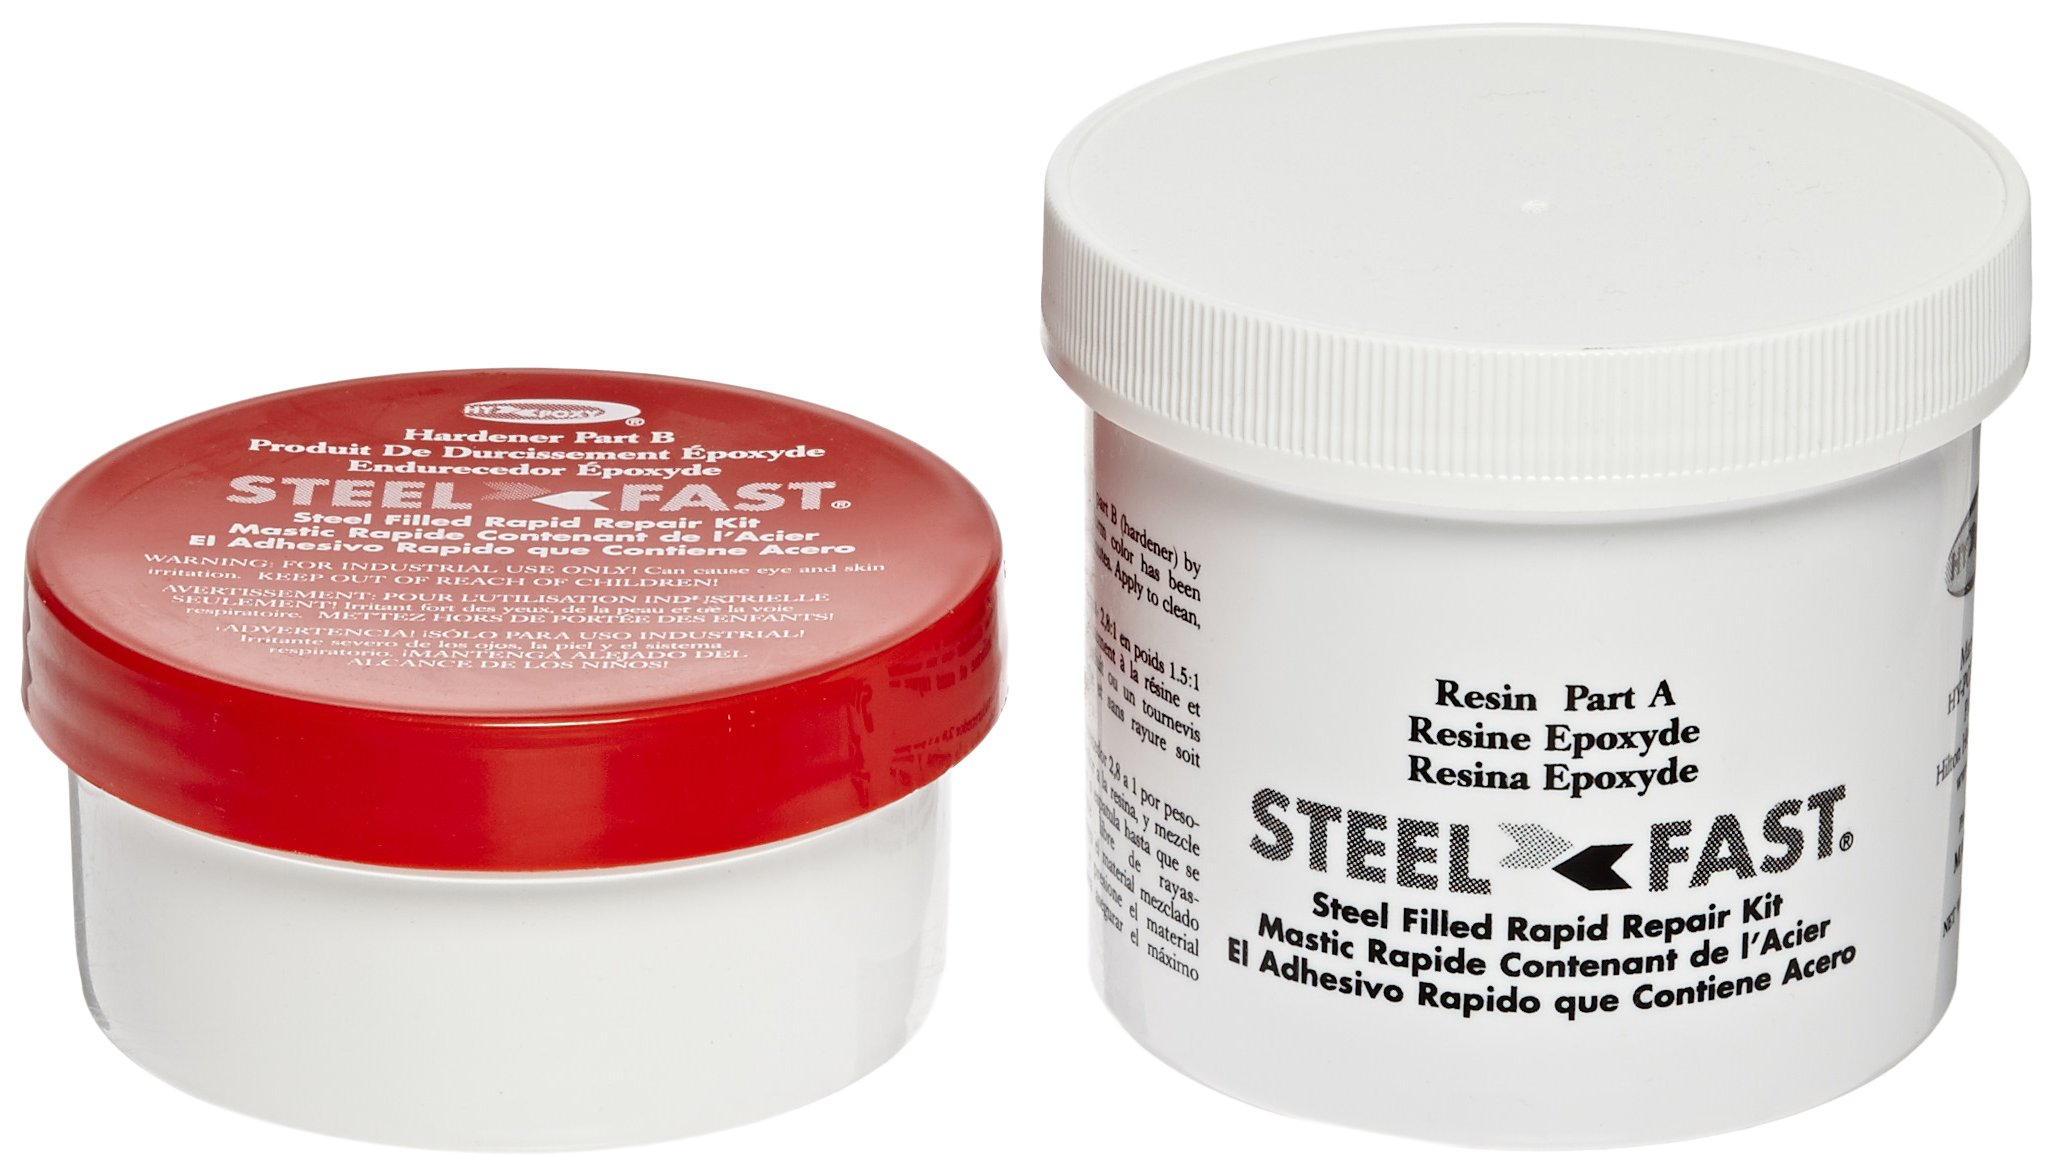 Hy-Poxy H-120 Steelfast 1 lbs Rapid Cure Steel Filled Putty Repair Kit by HY-POXY